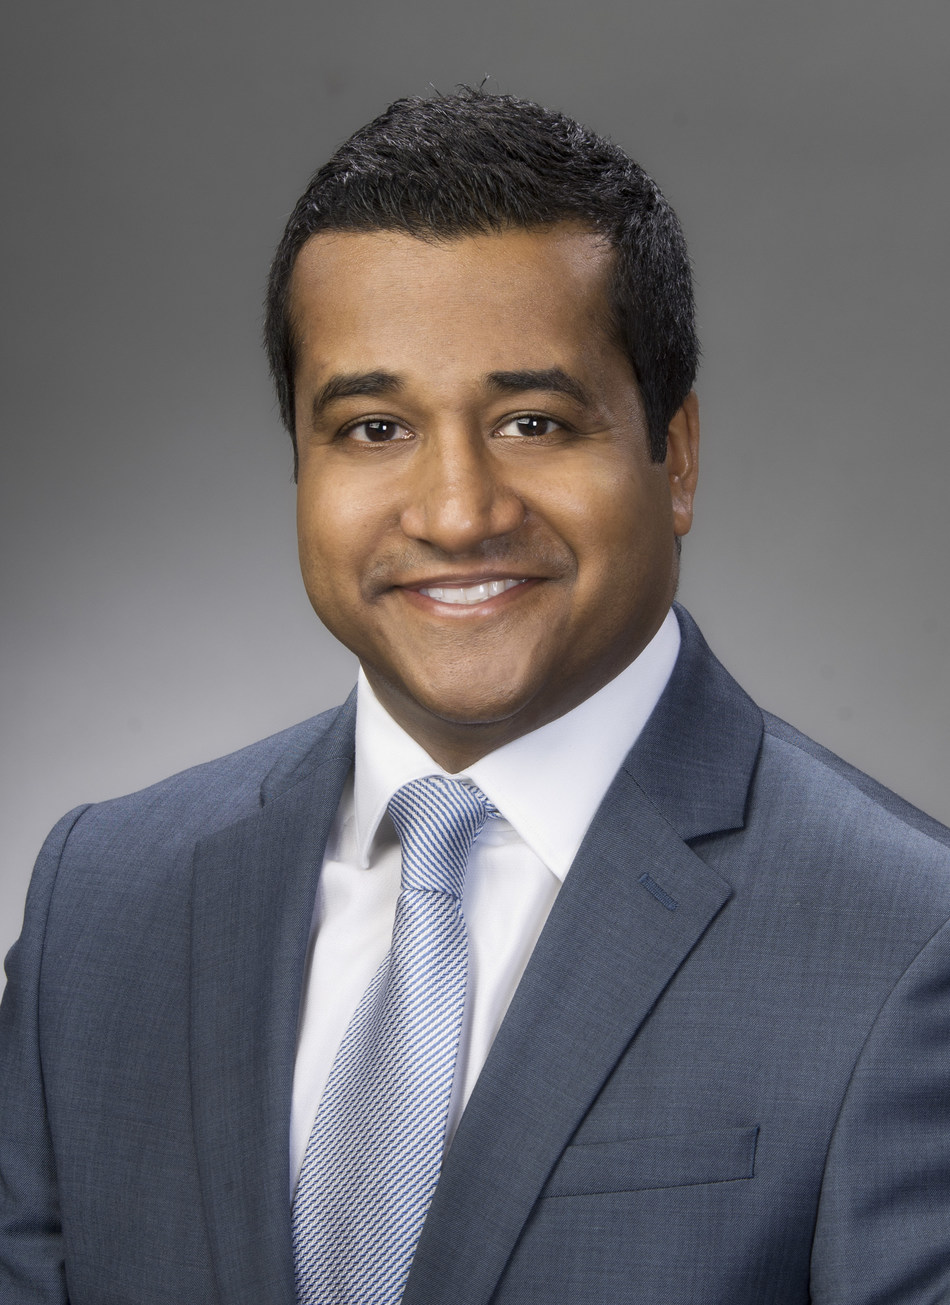 Asim Z. Haque, Vice President – State and Member Services